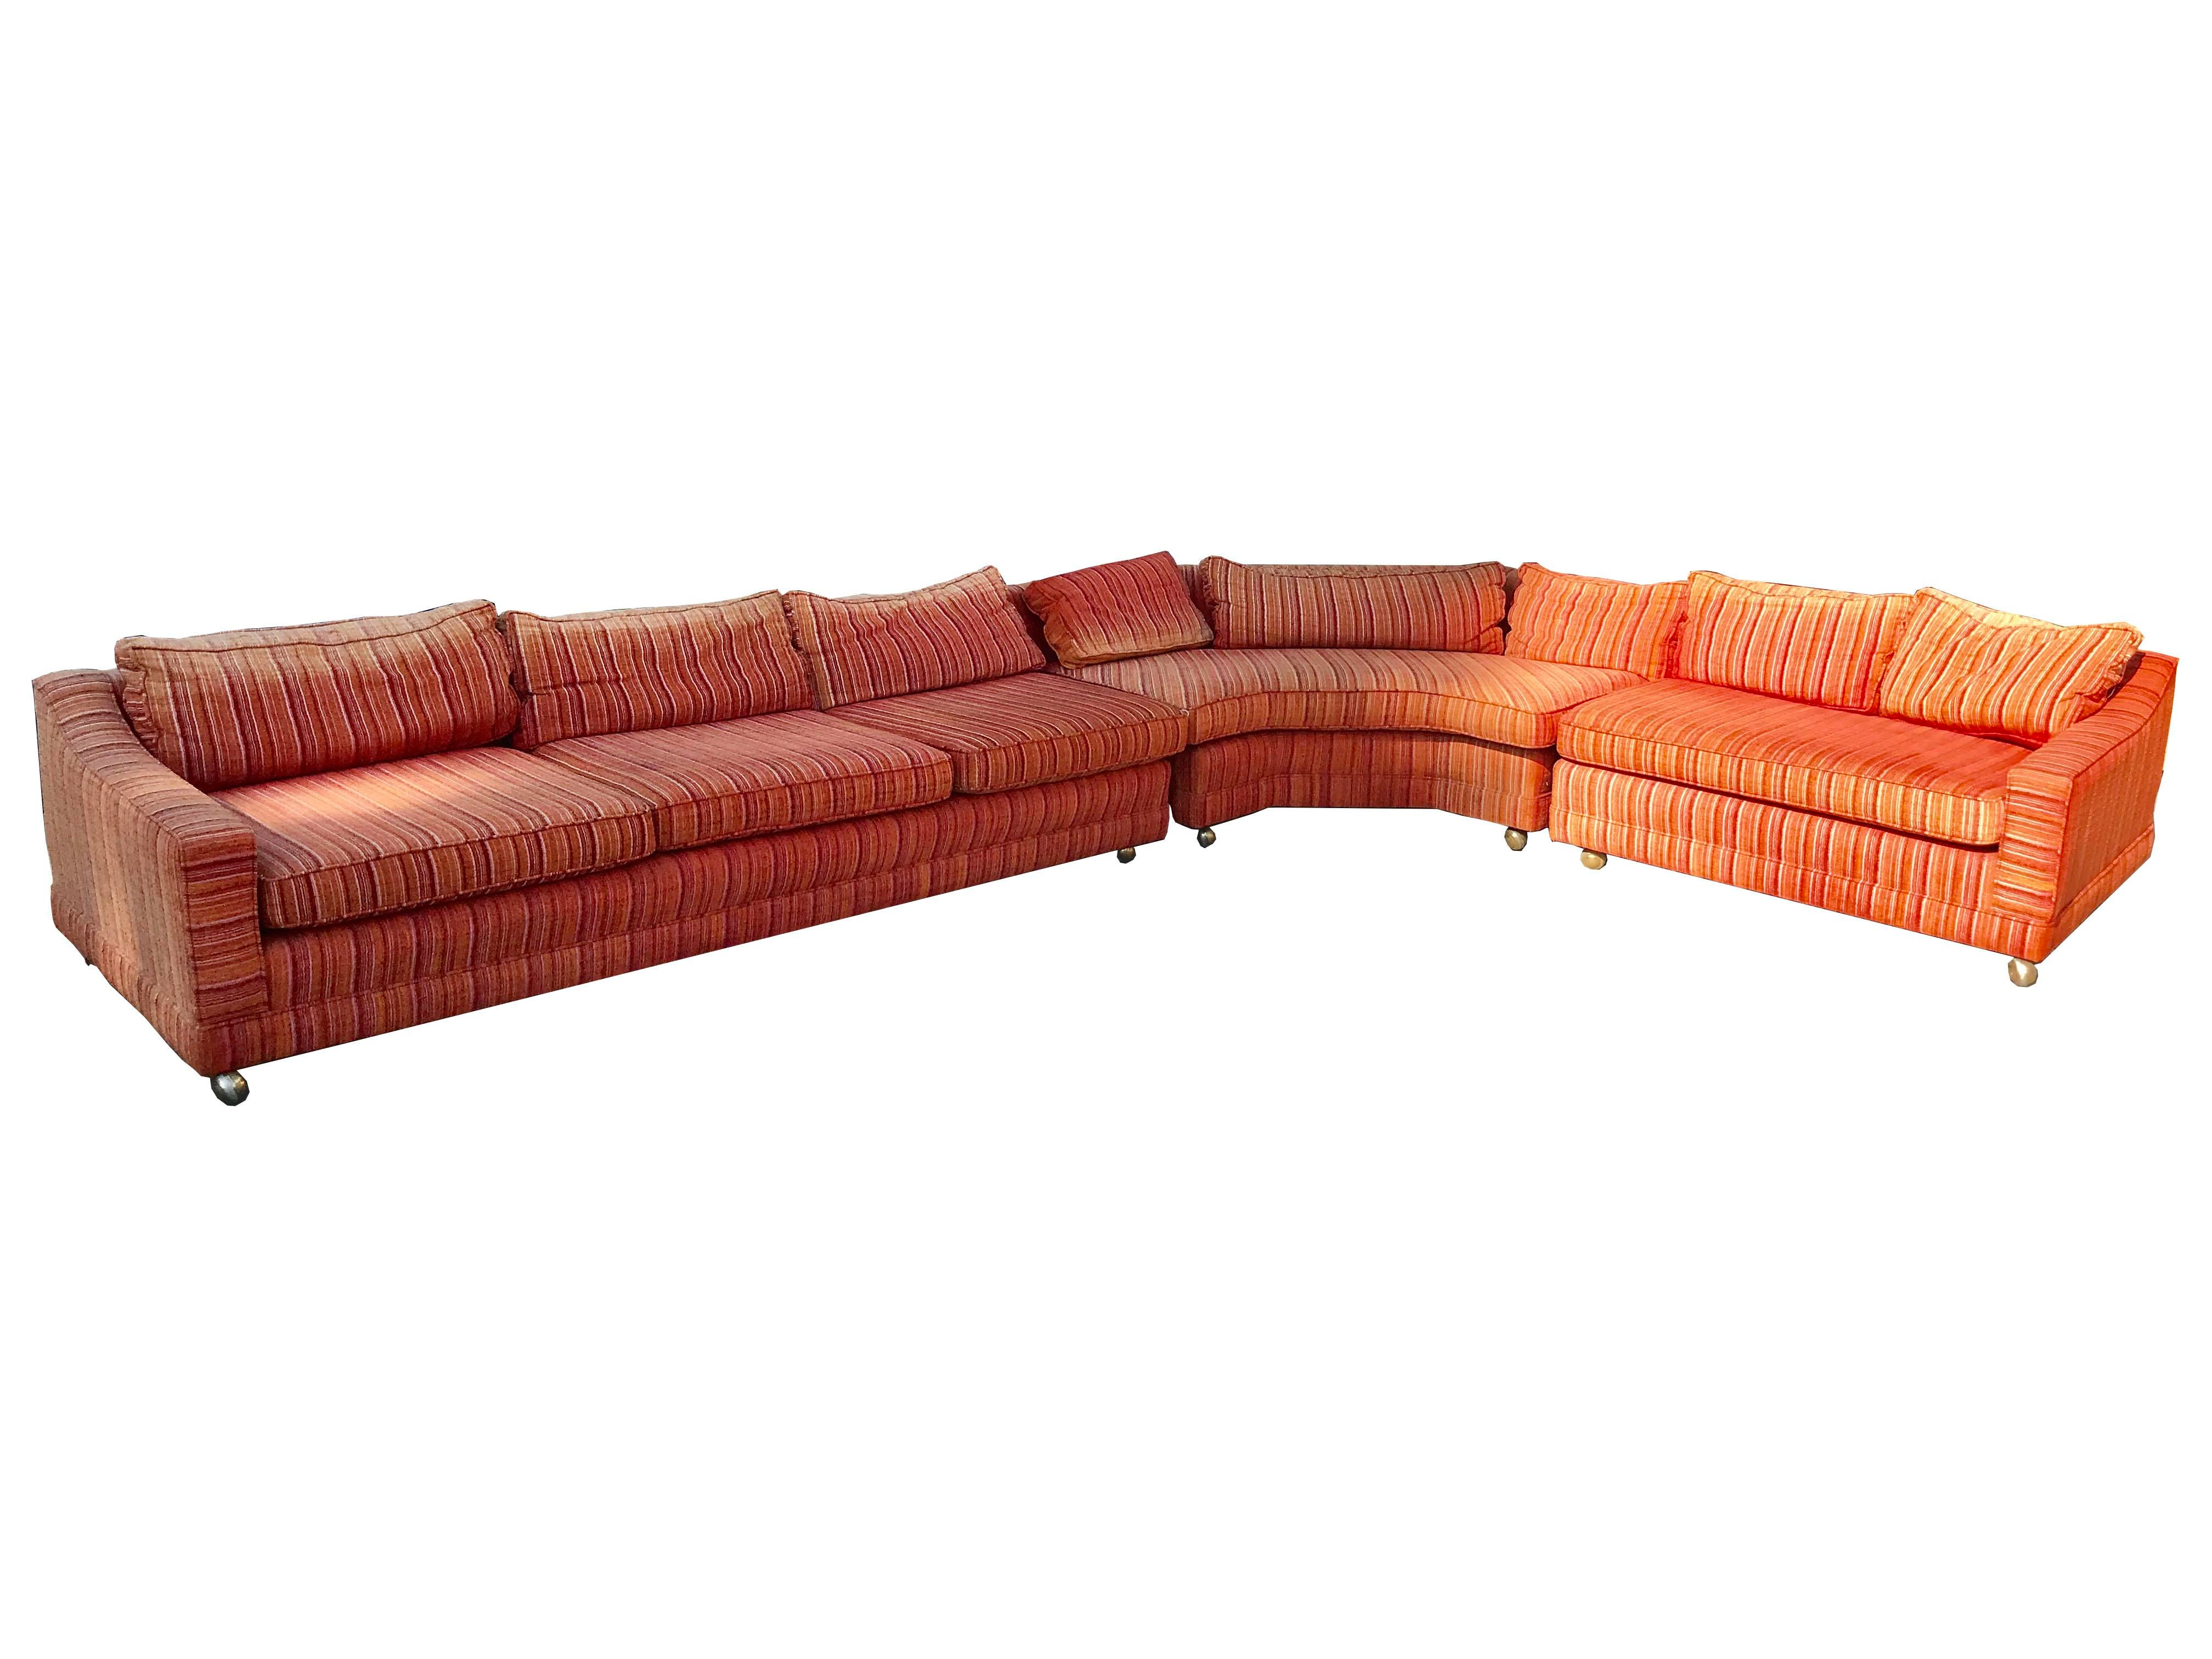 Vintage Mid Century Orange Sectional Sofa Chairish